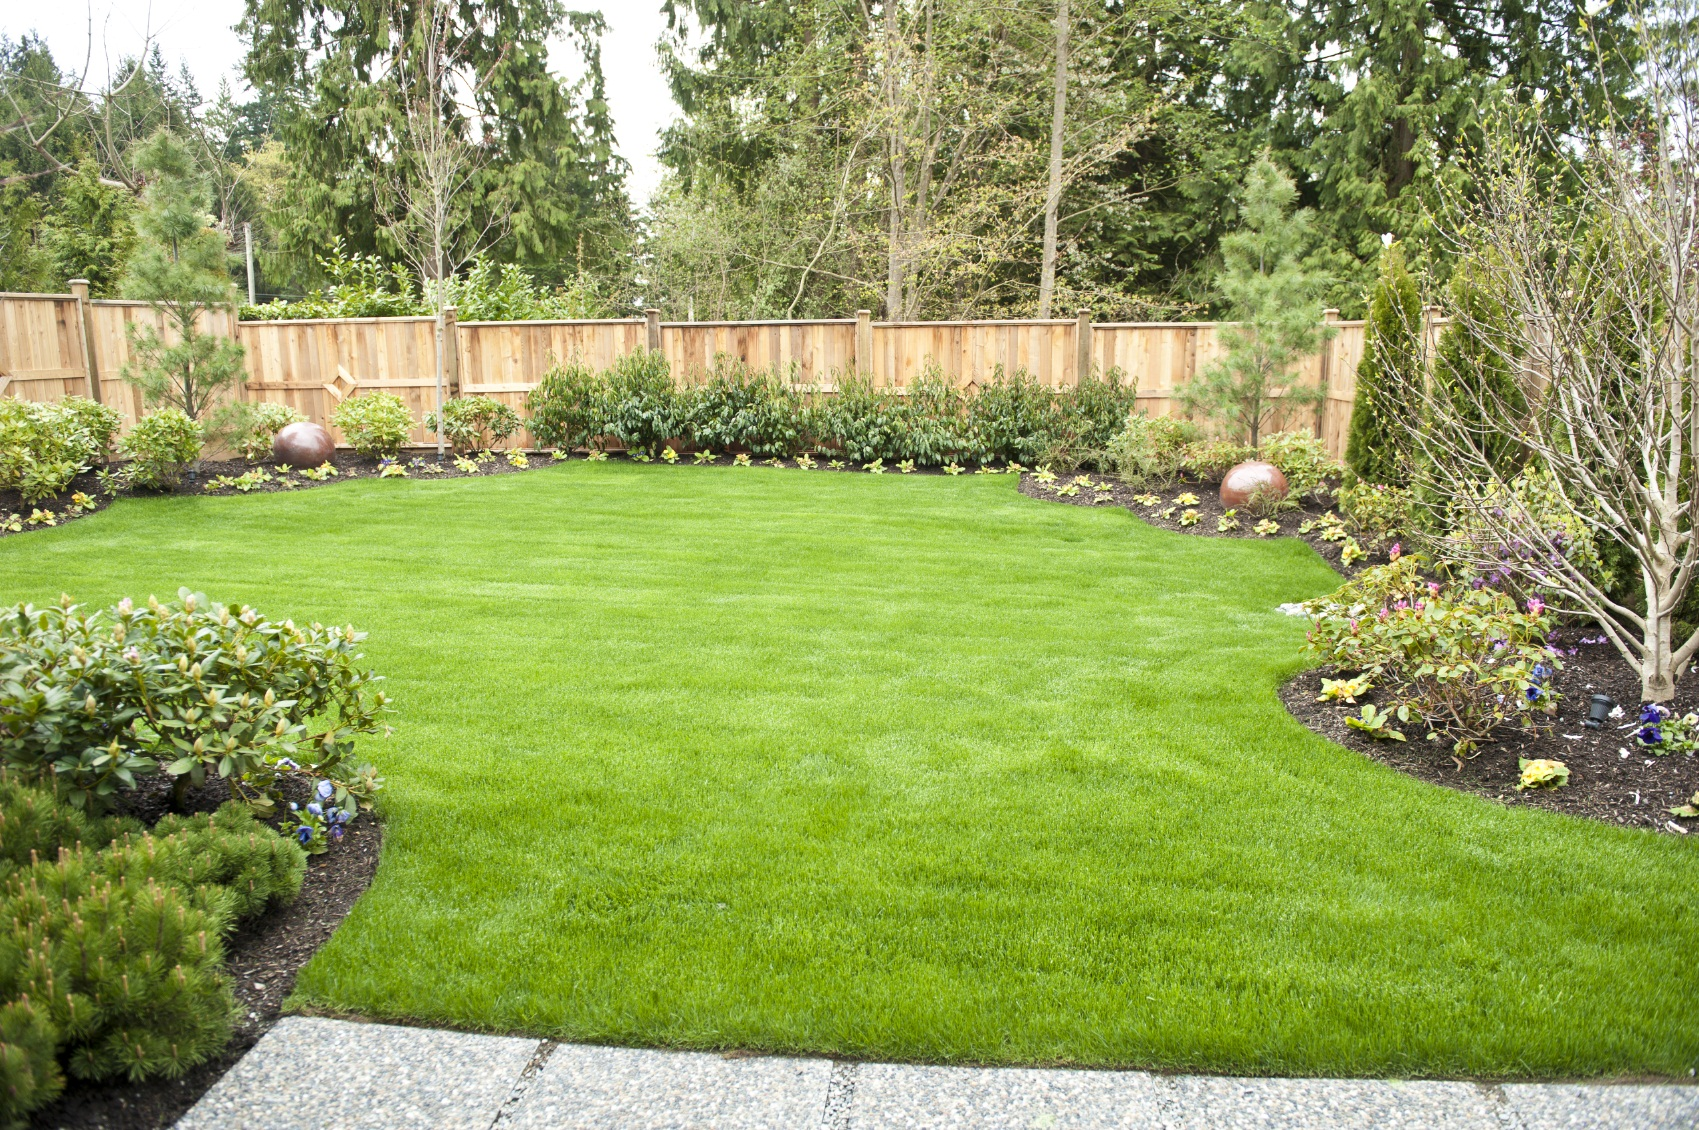 Backyard landscaping tips metamorphosis landscape design for Garden designs for small backyards